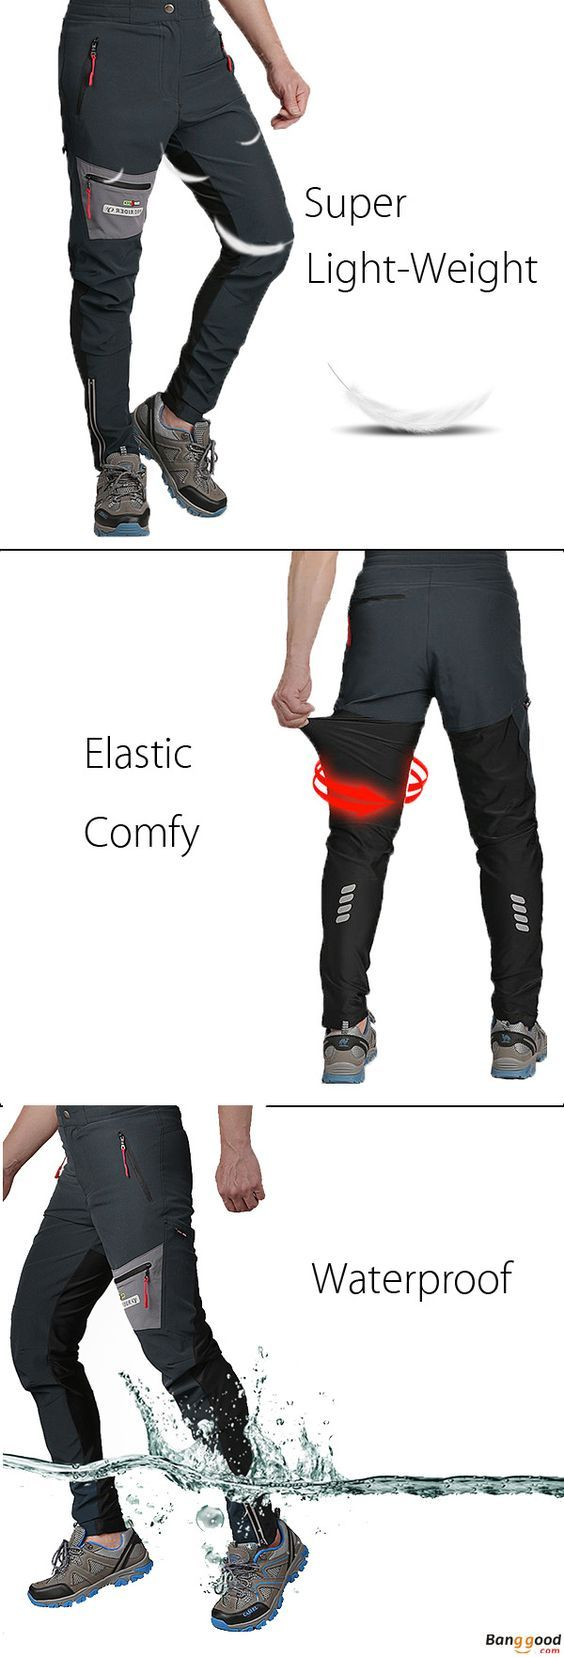 US$44.99 + Free Shipping. Mens Pants, Outdoor Pants, High-elastic Pants, Quick-drying Pants, Sport Pants, Waterproof Pants, Breathable Pants, Slim-fit Climbing Trousers. Color: Black, Grey. You're Worth It!